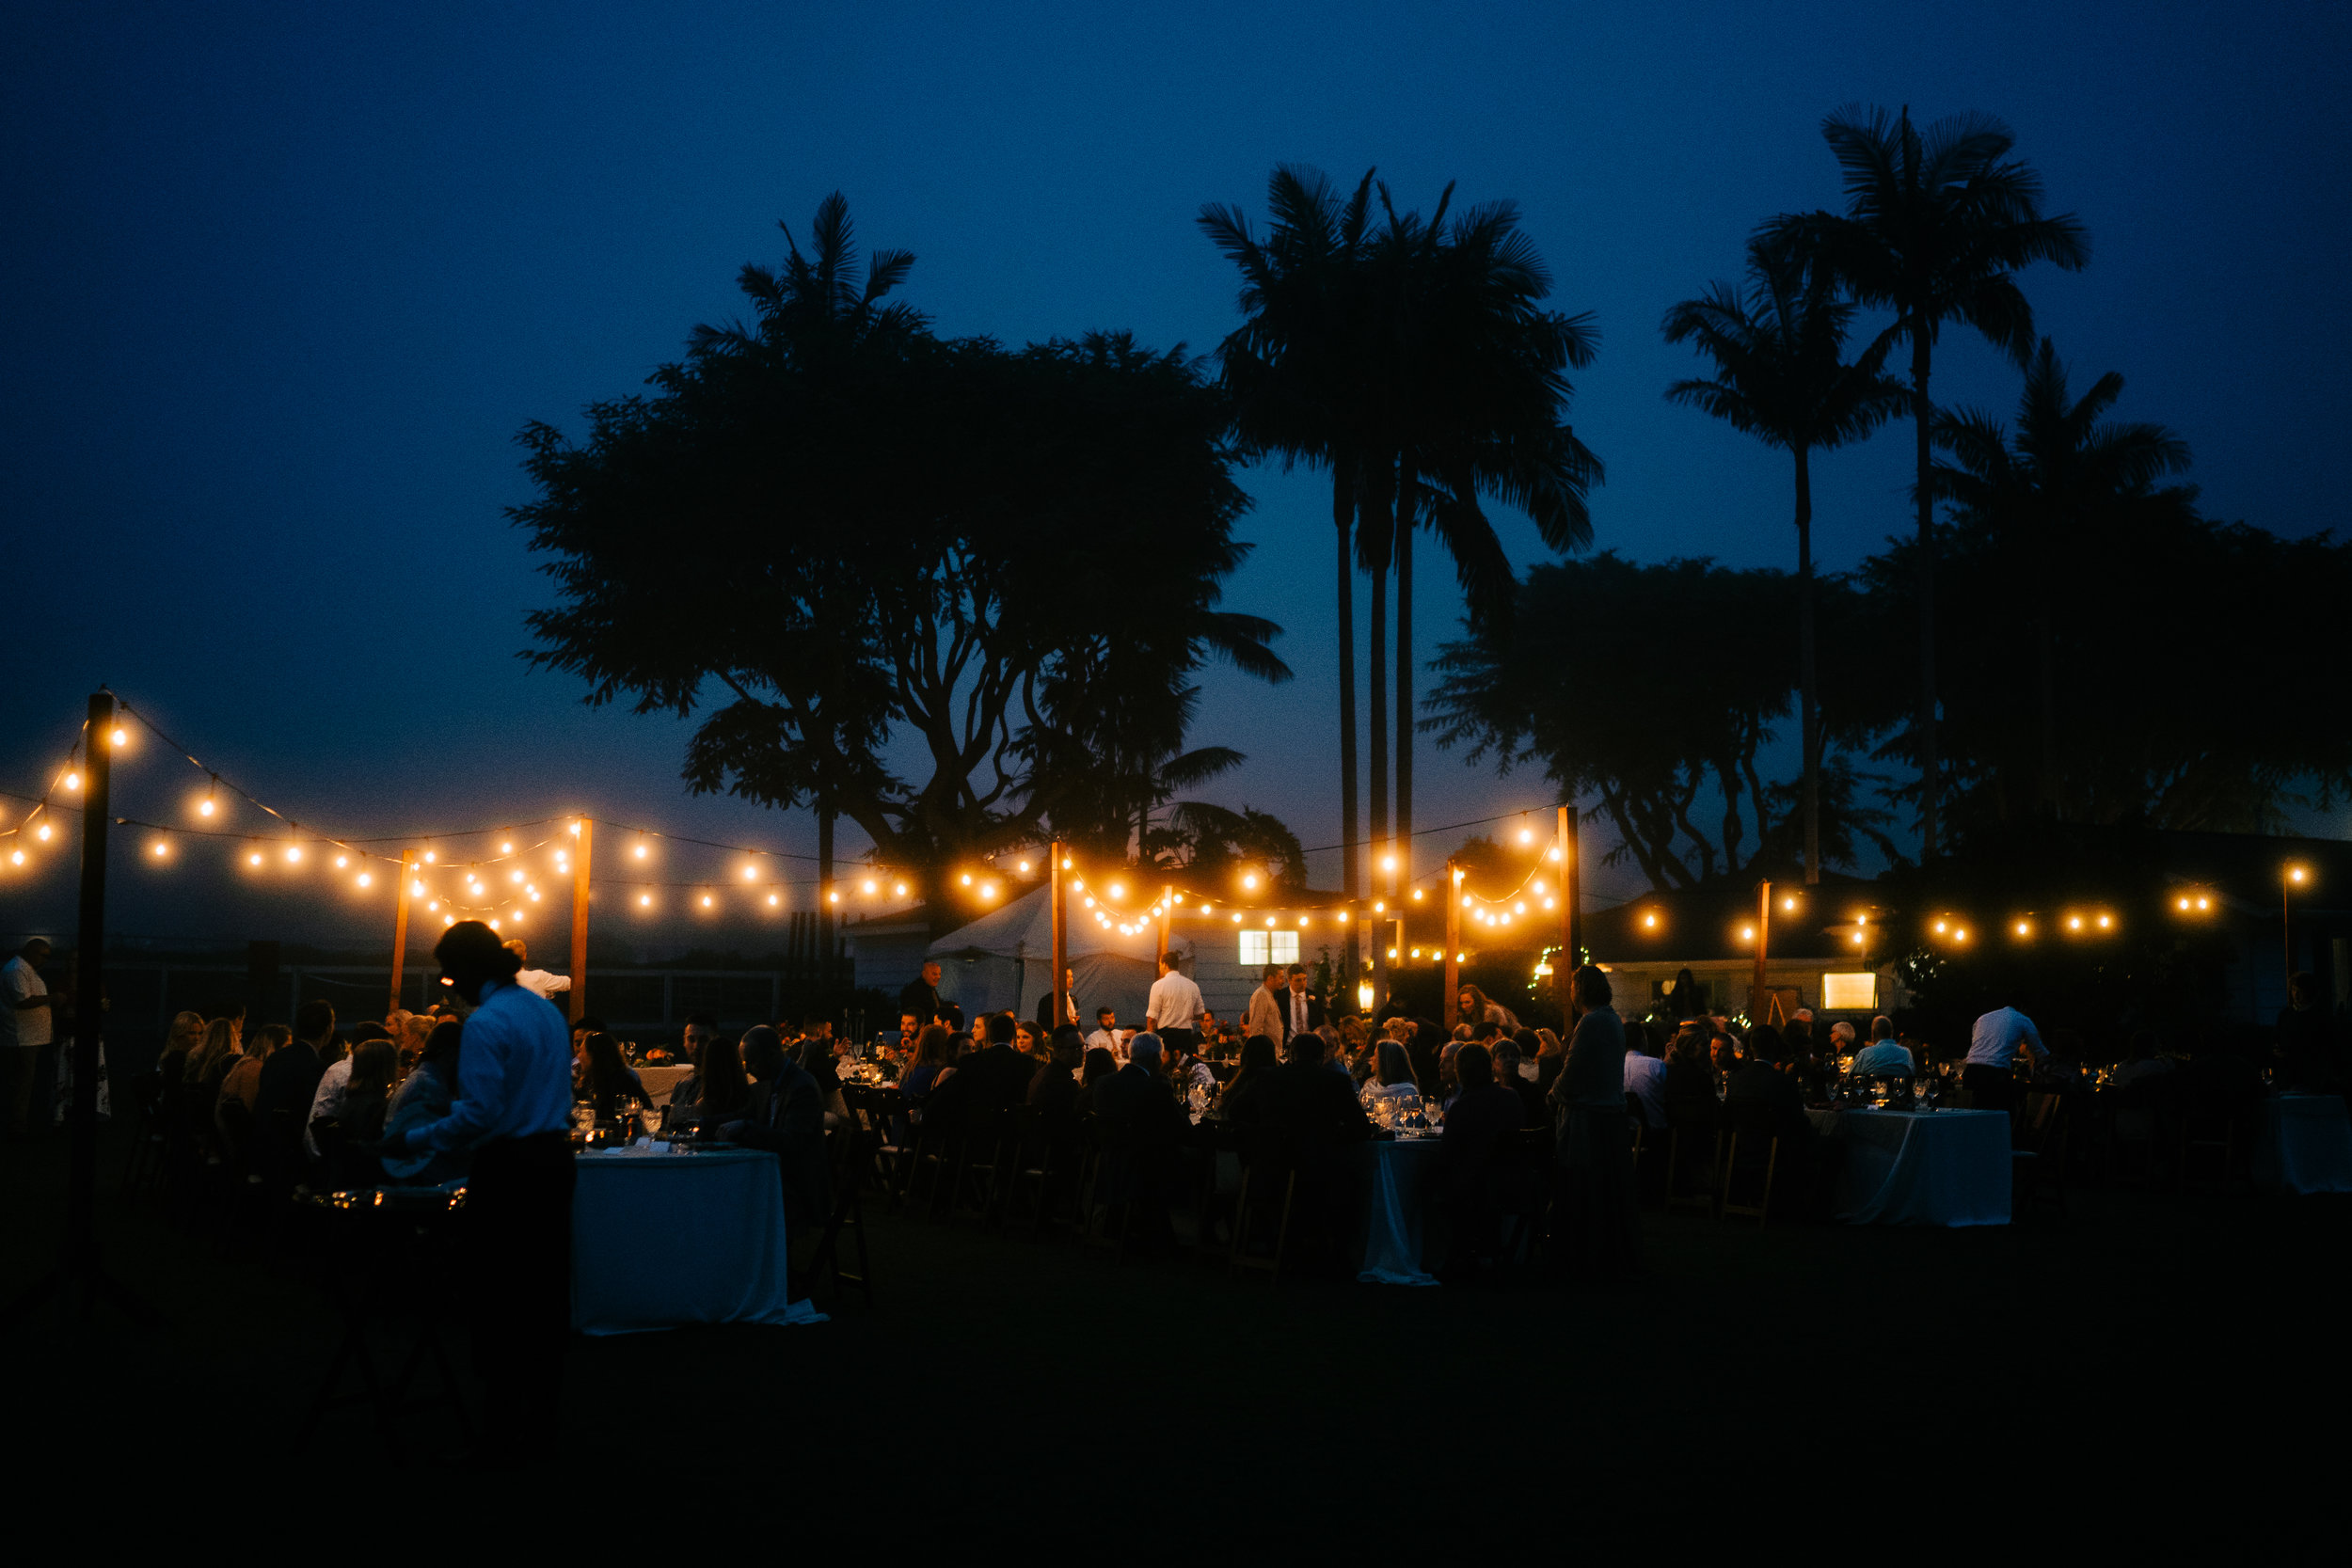 www.santabarbarawedding.com | Brandon Bibbins Photography | The Cottages at Polo Run | Bright Event Rentals | Lighted Reception at Night